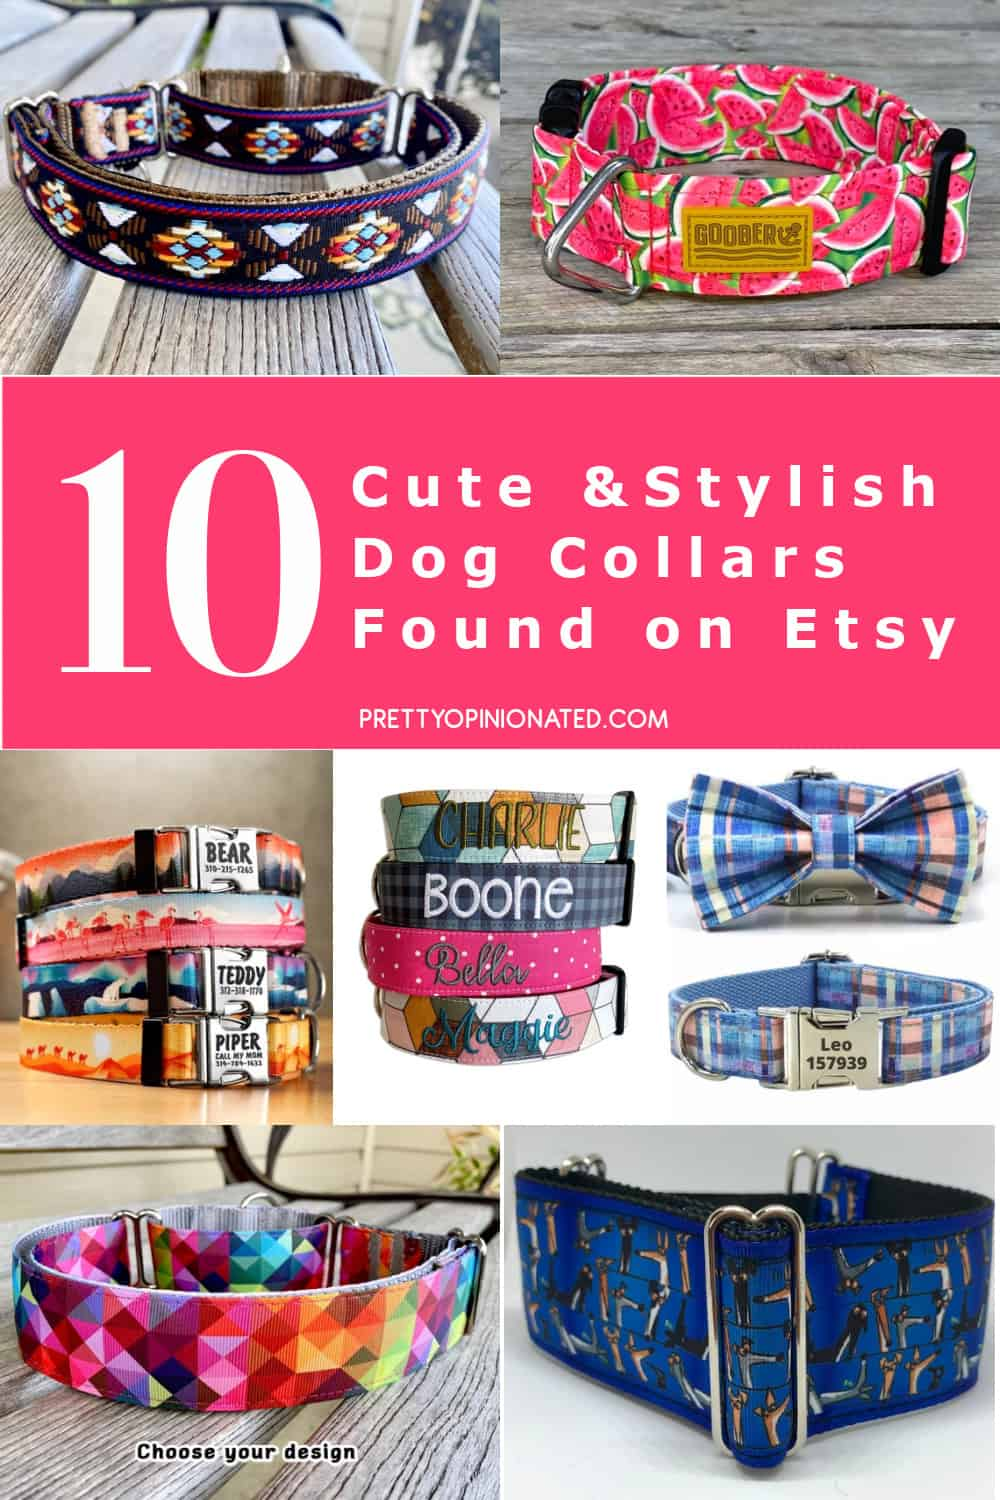 Your pup deserves the best of the best, so here are 10 diverse, stylish (and HUMANE) handmade dog collars on Etsy that you'll absolutely love! Check them out!